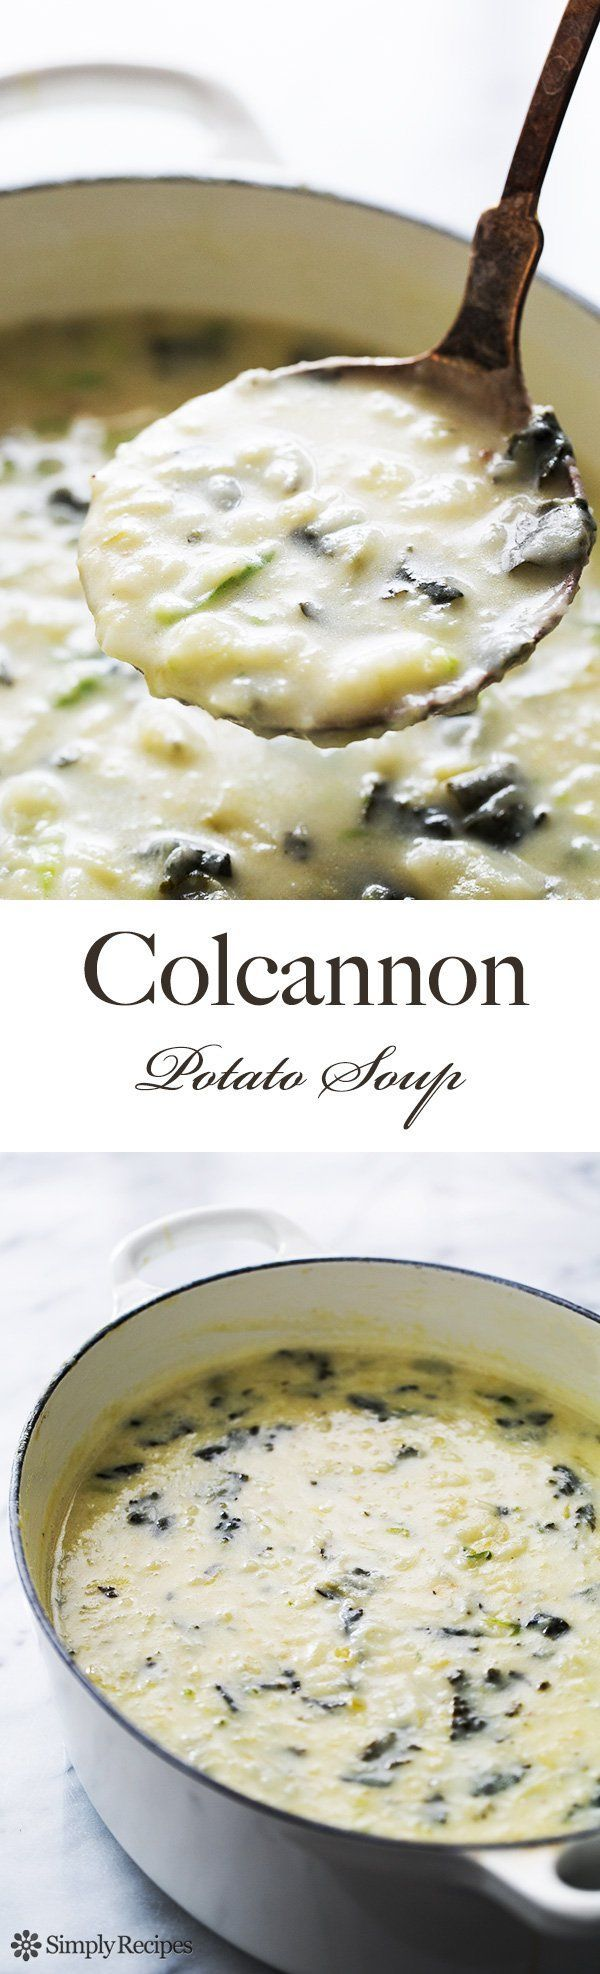 25+ best ideas about Colcannon potatoes on Pinterest ...